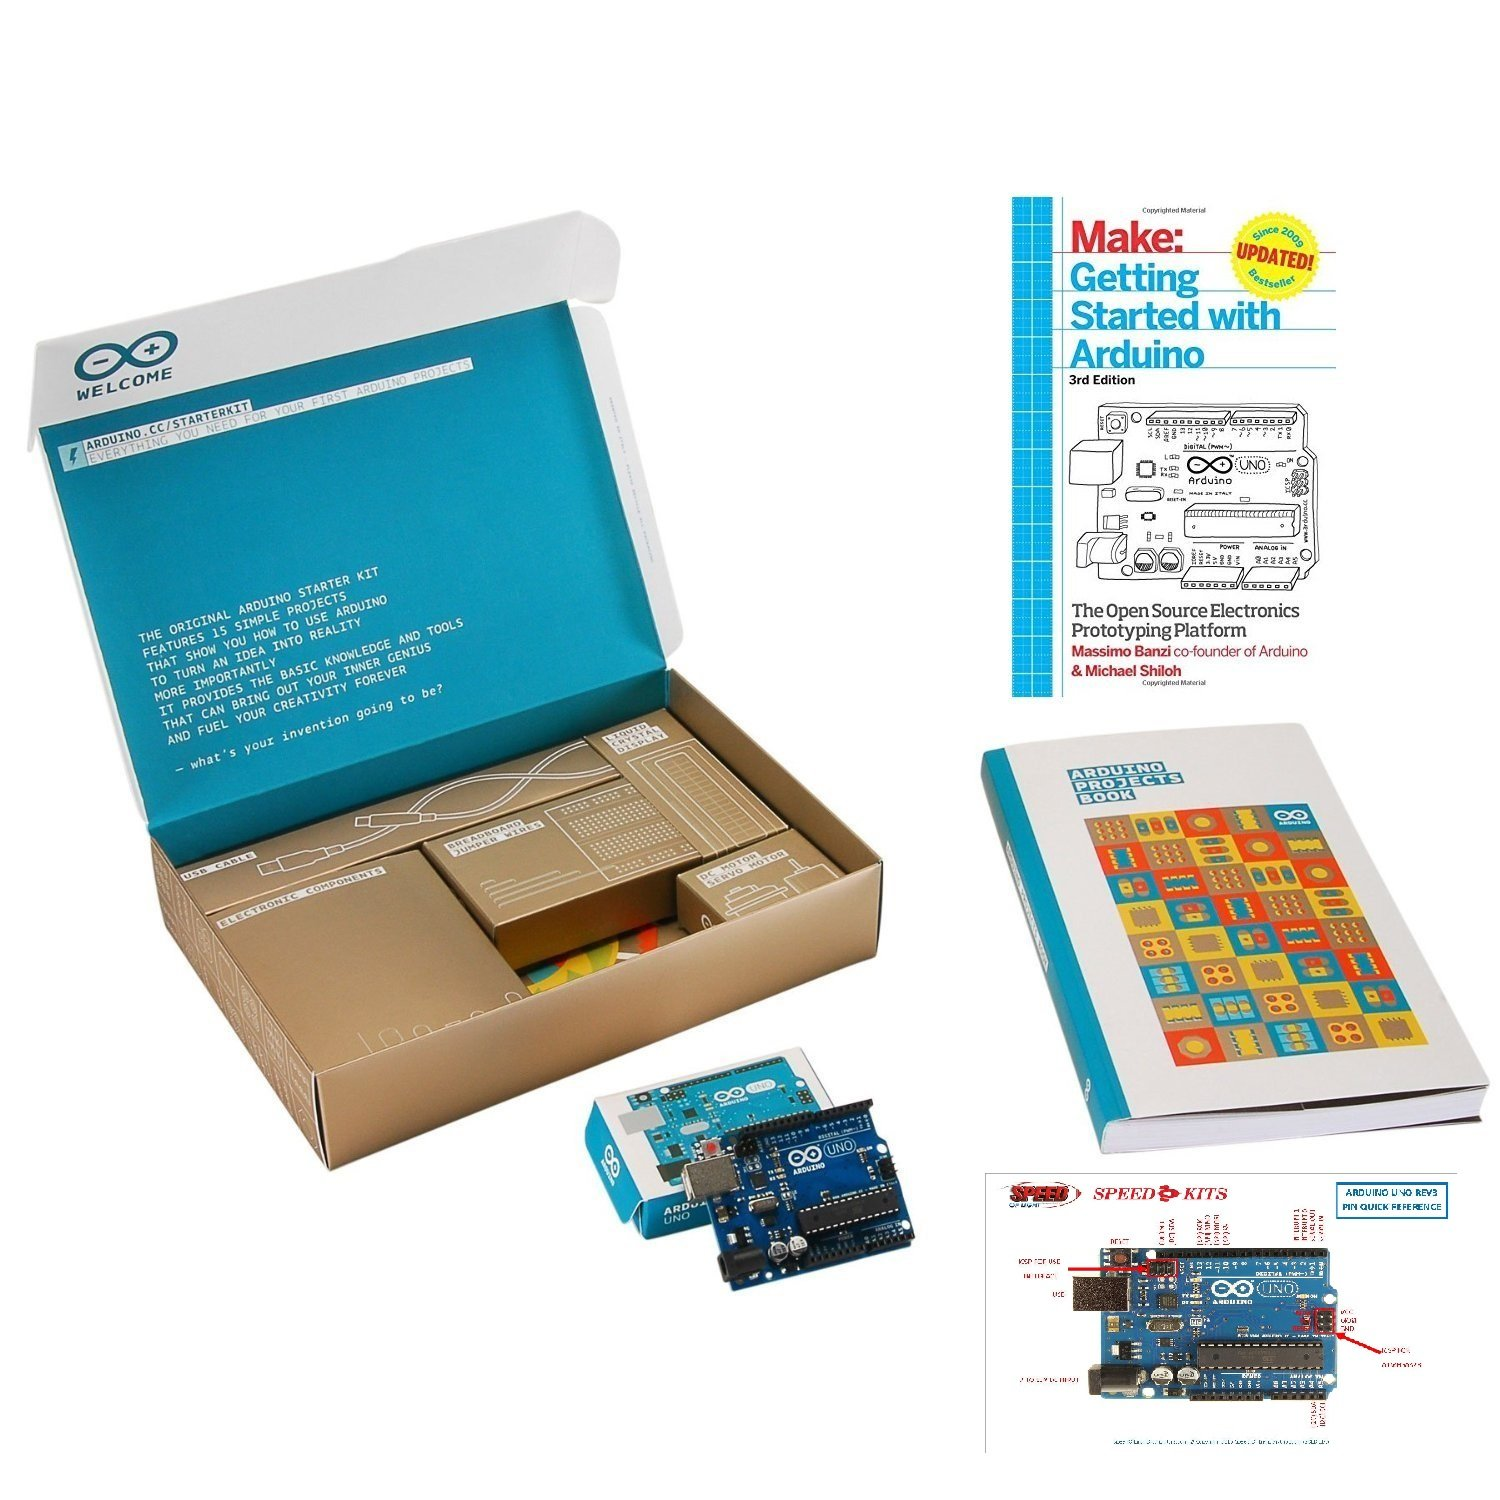 The Official Arduino Starter Kit Deluxe Bundle with Make: Getting Started with Arduino: The Open Source Electronics Prototyping Platform 3rd Edition Book ASC-MAB